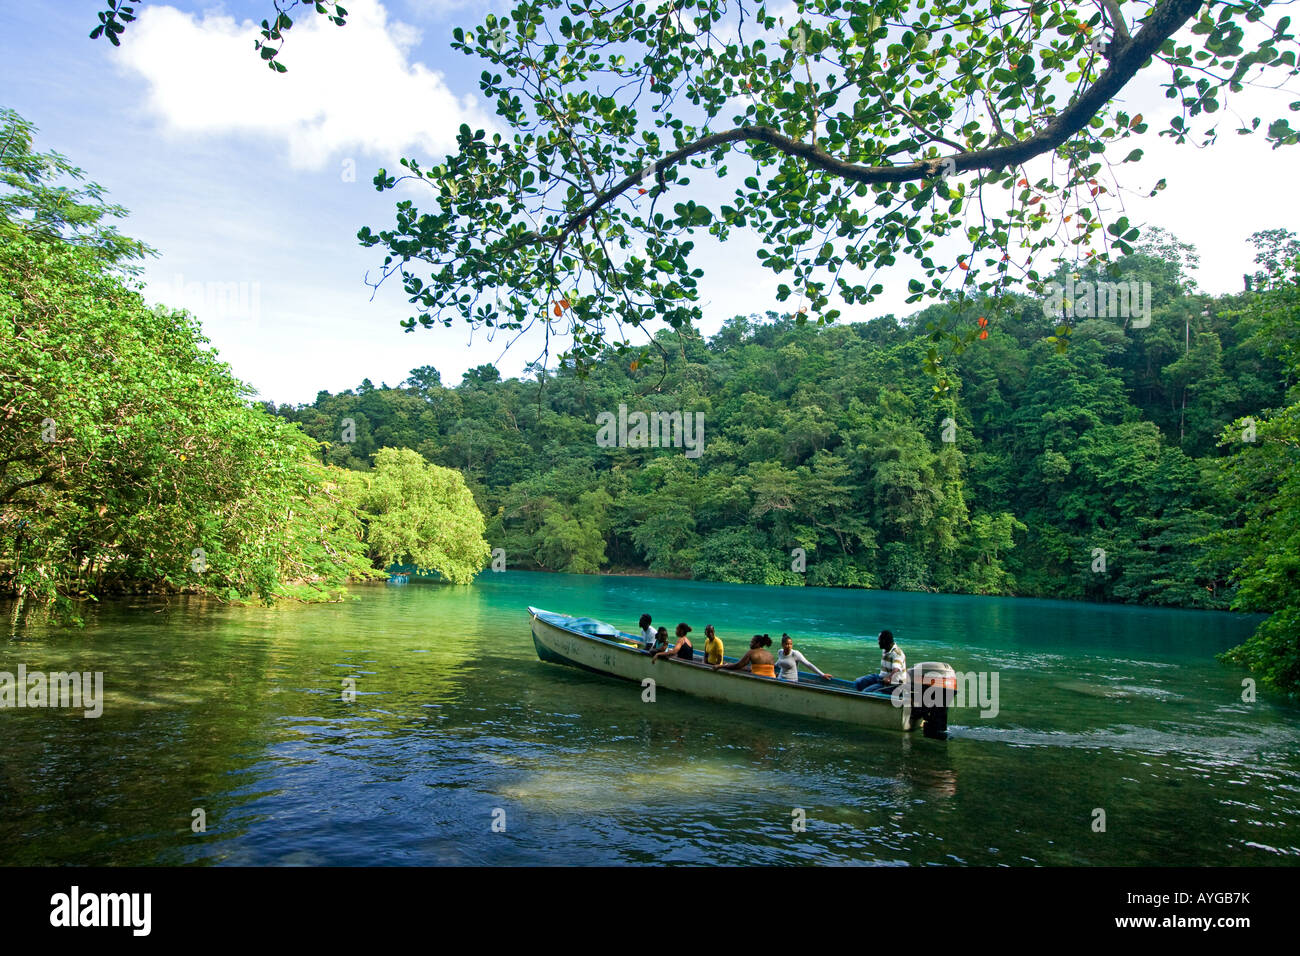 Jamaica Port Antonio Tropical landscape at blue lagoon tour boat with tourists - Stock Image